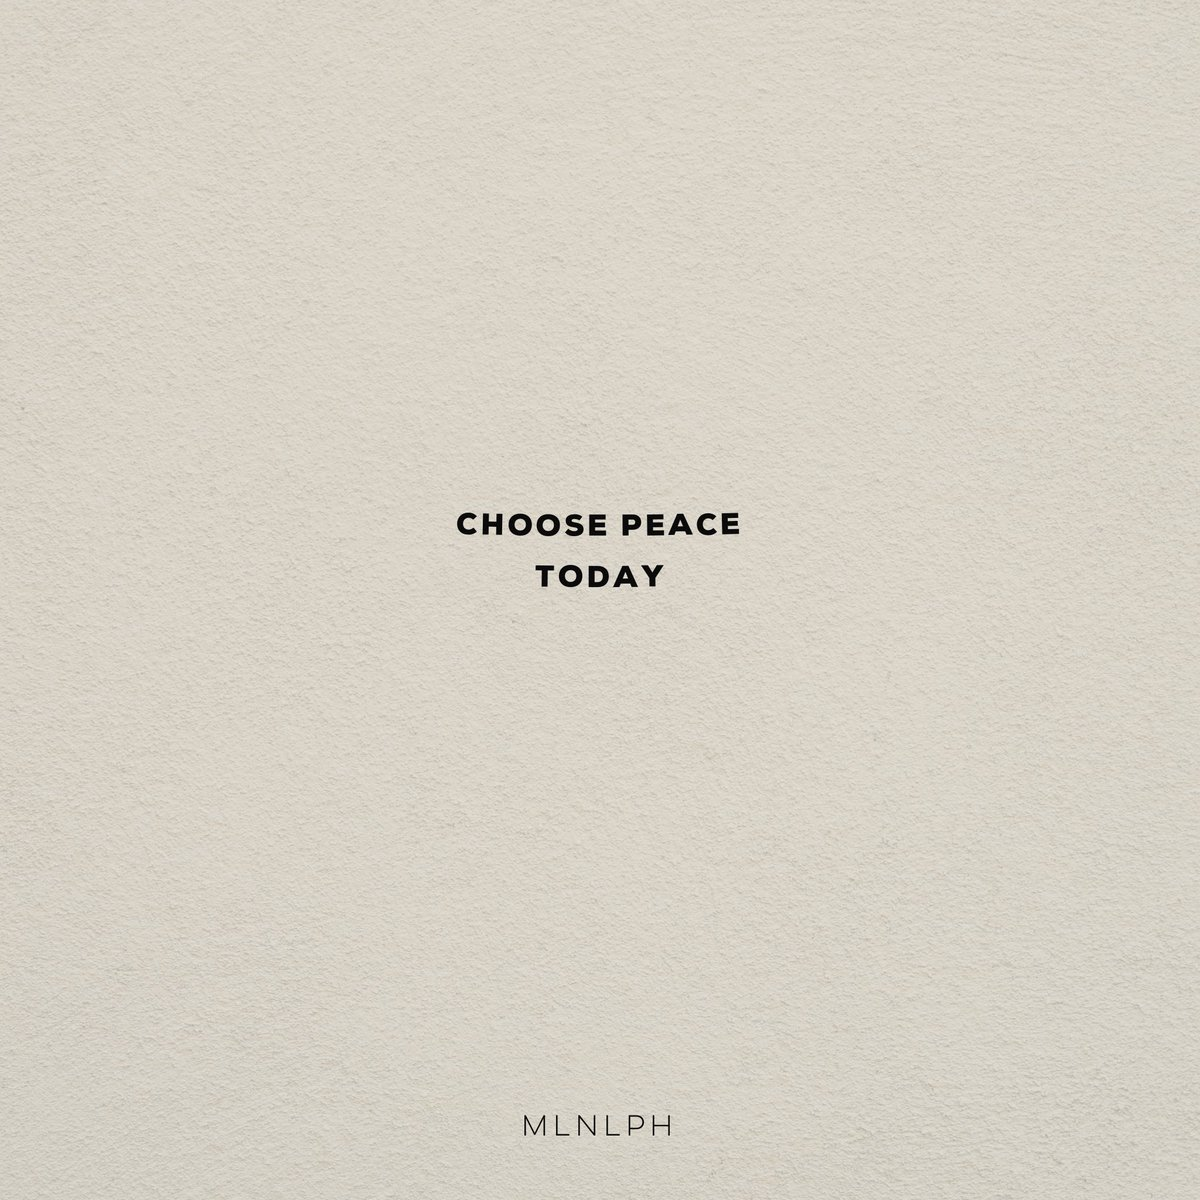 We know this can feel like chaos, but remember to choose peace today.